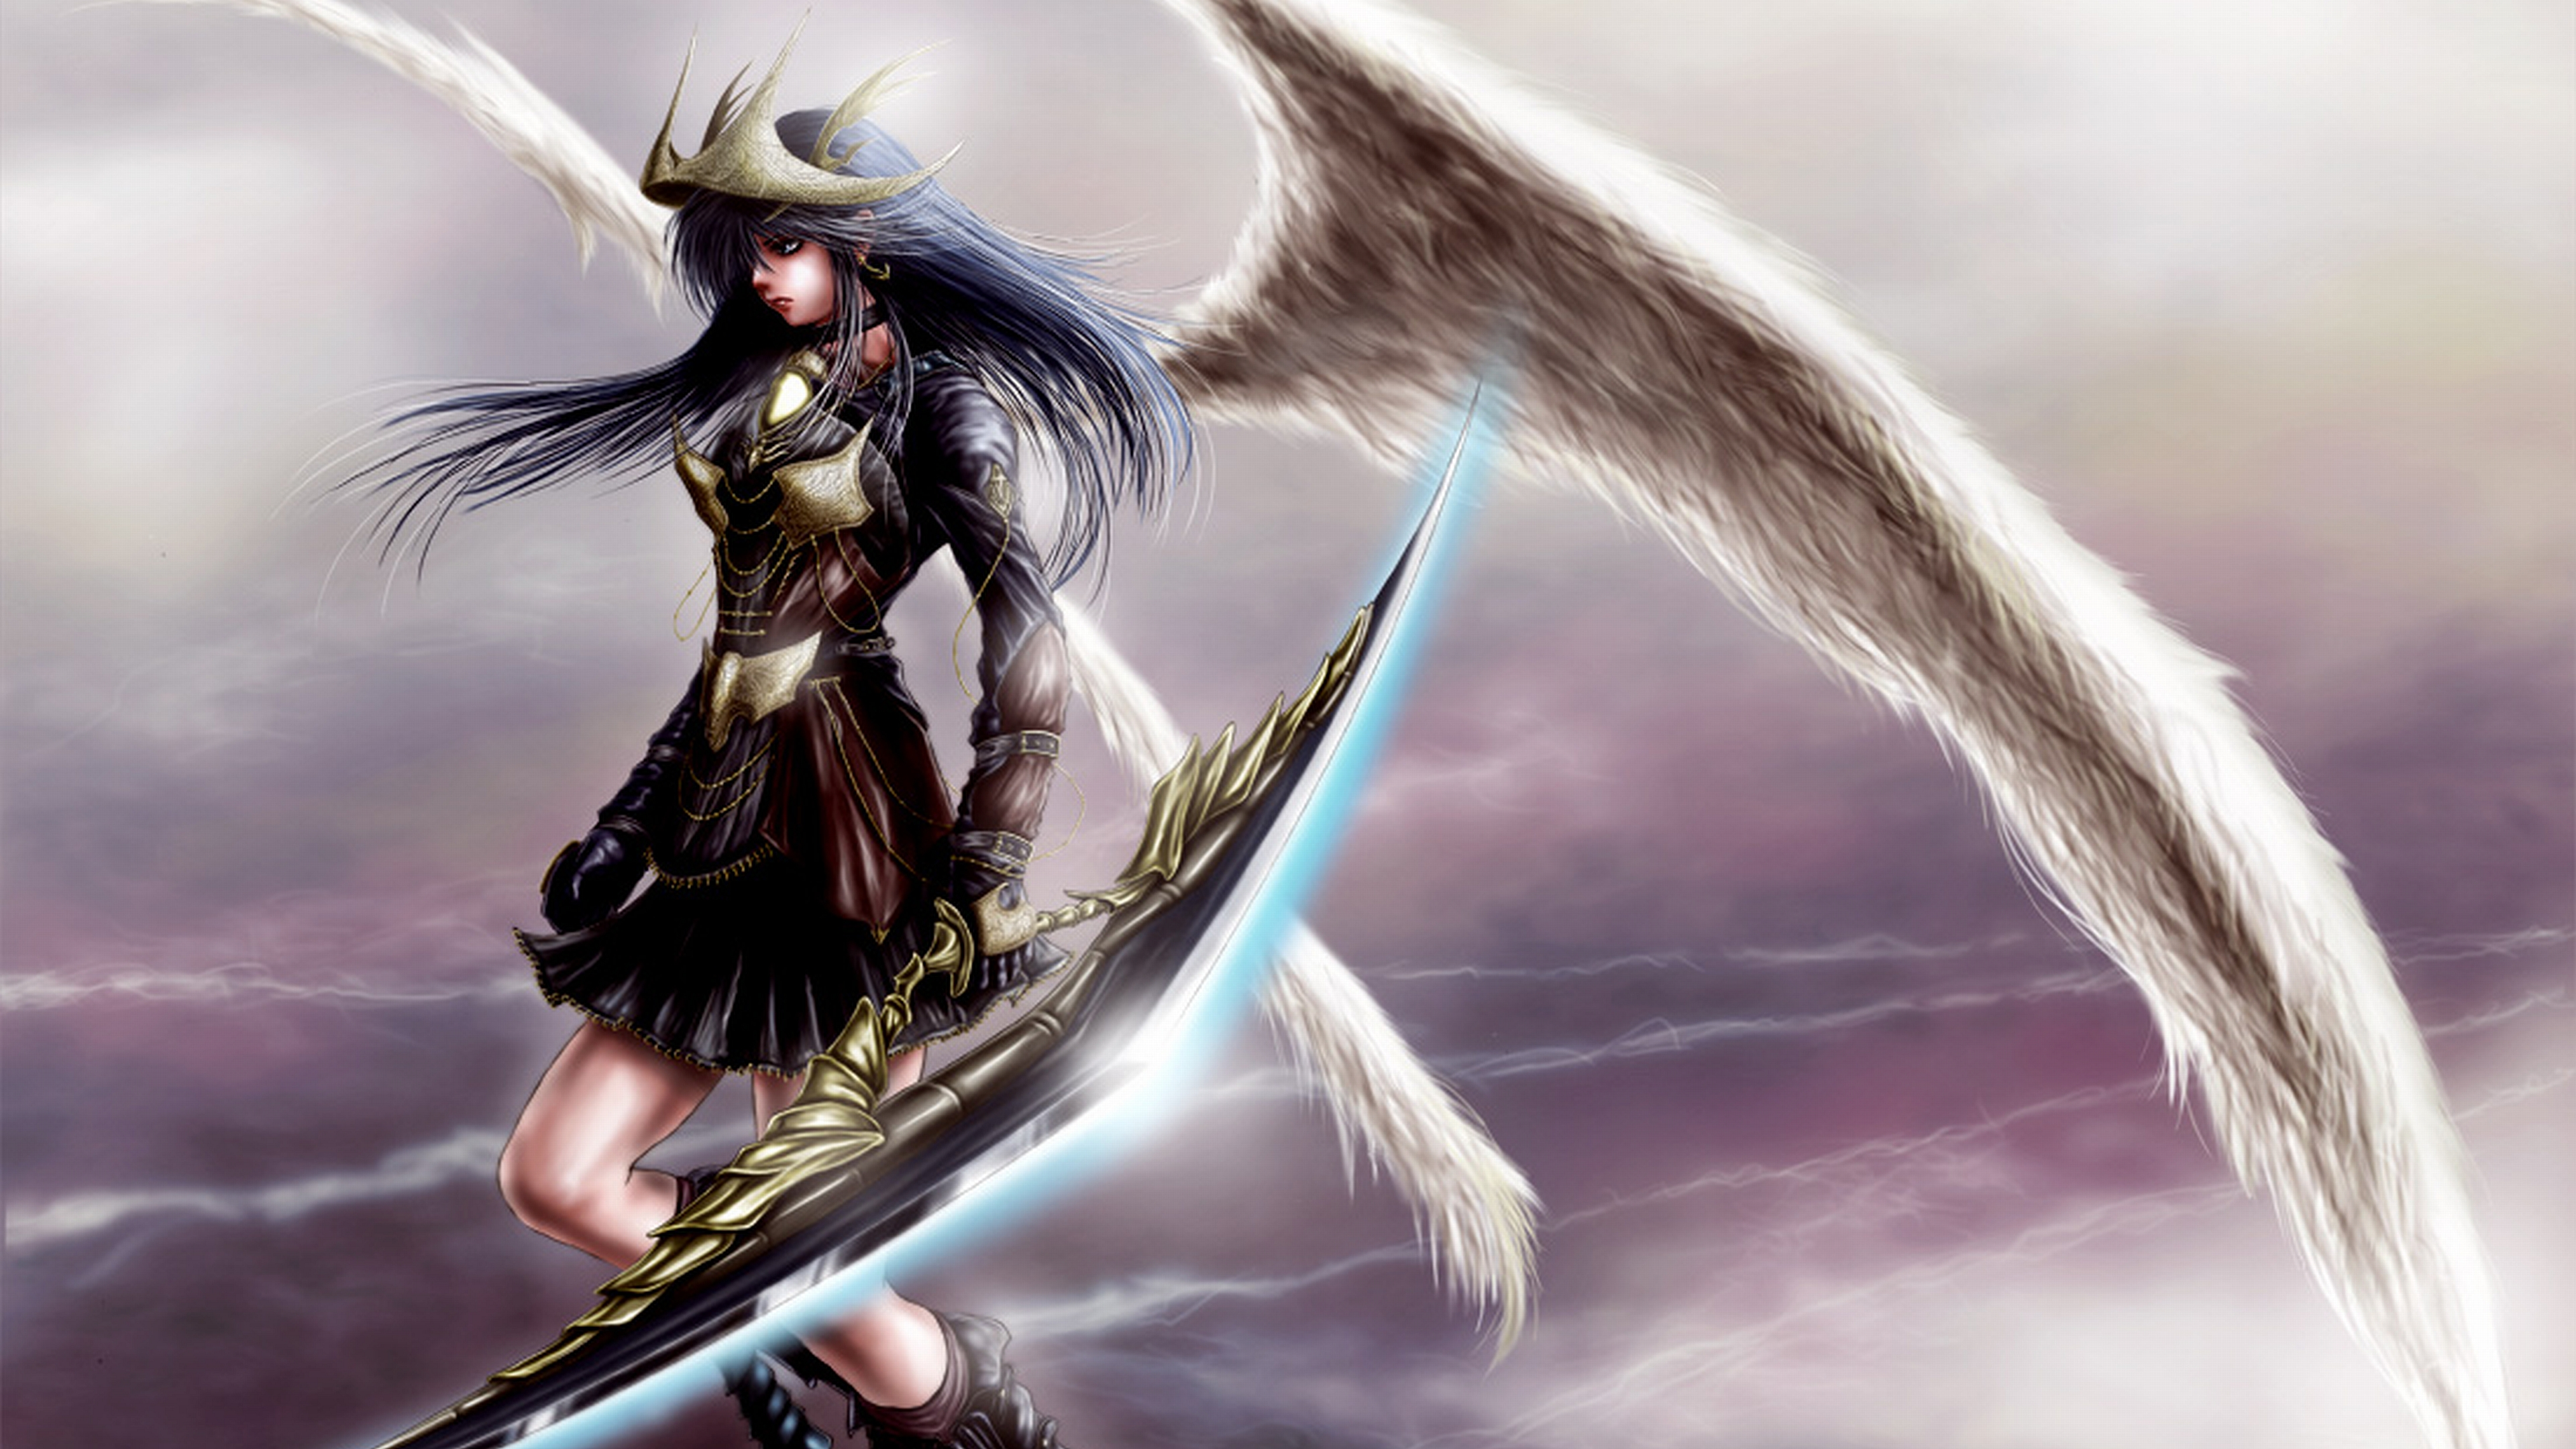 other wallpaper angel warrior - photo #21